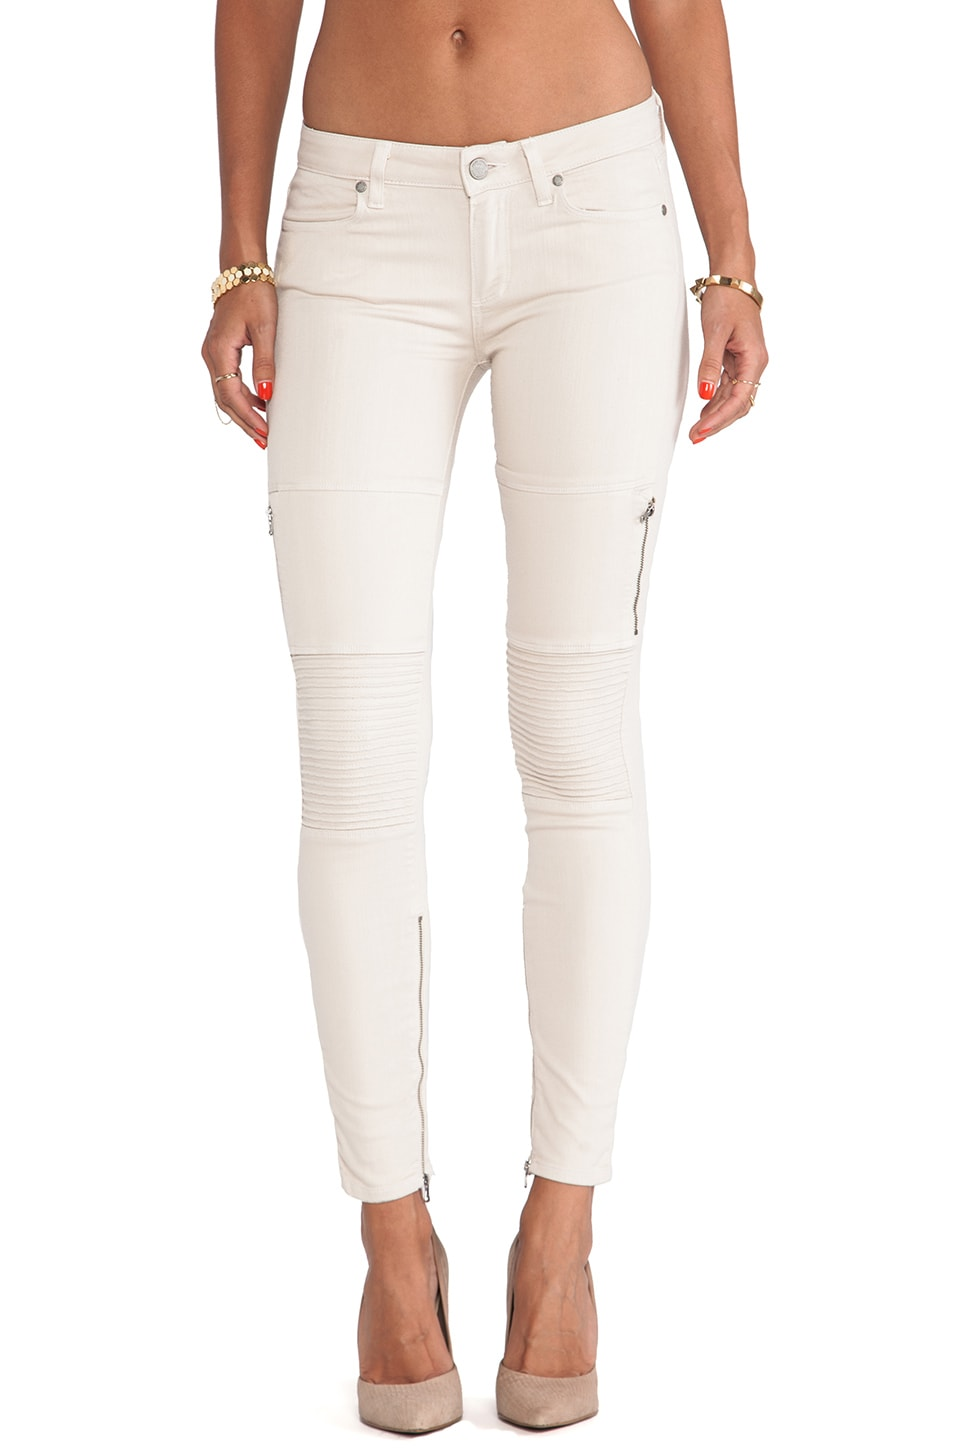 Paige Denim Demi Ultra Skinny in Shell